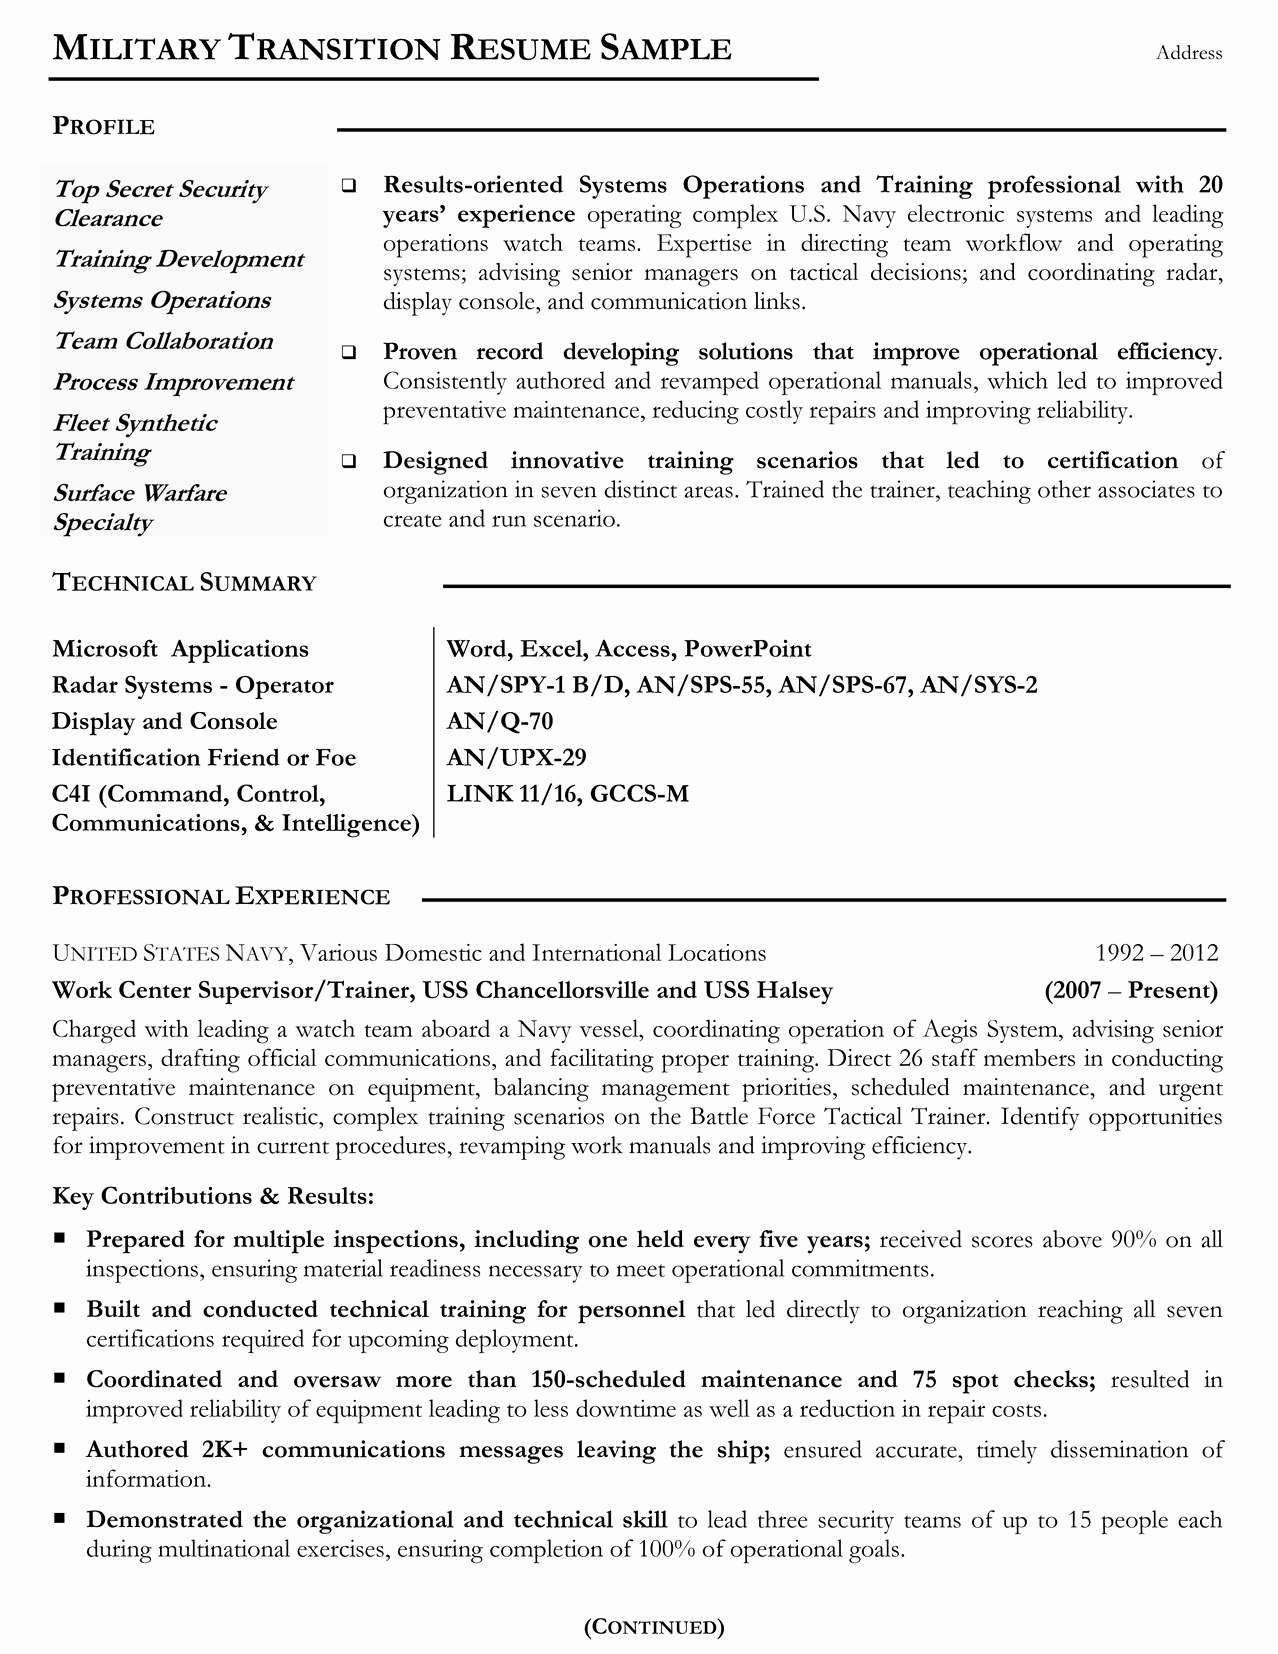 Free resume templates for veterans with images resume